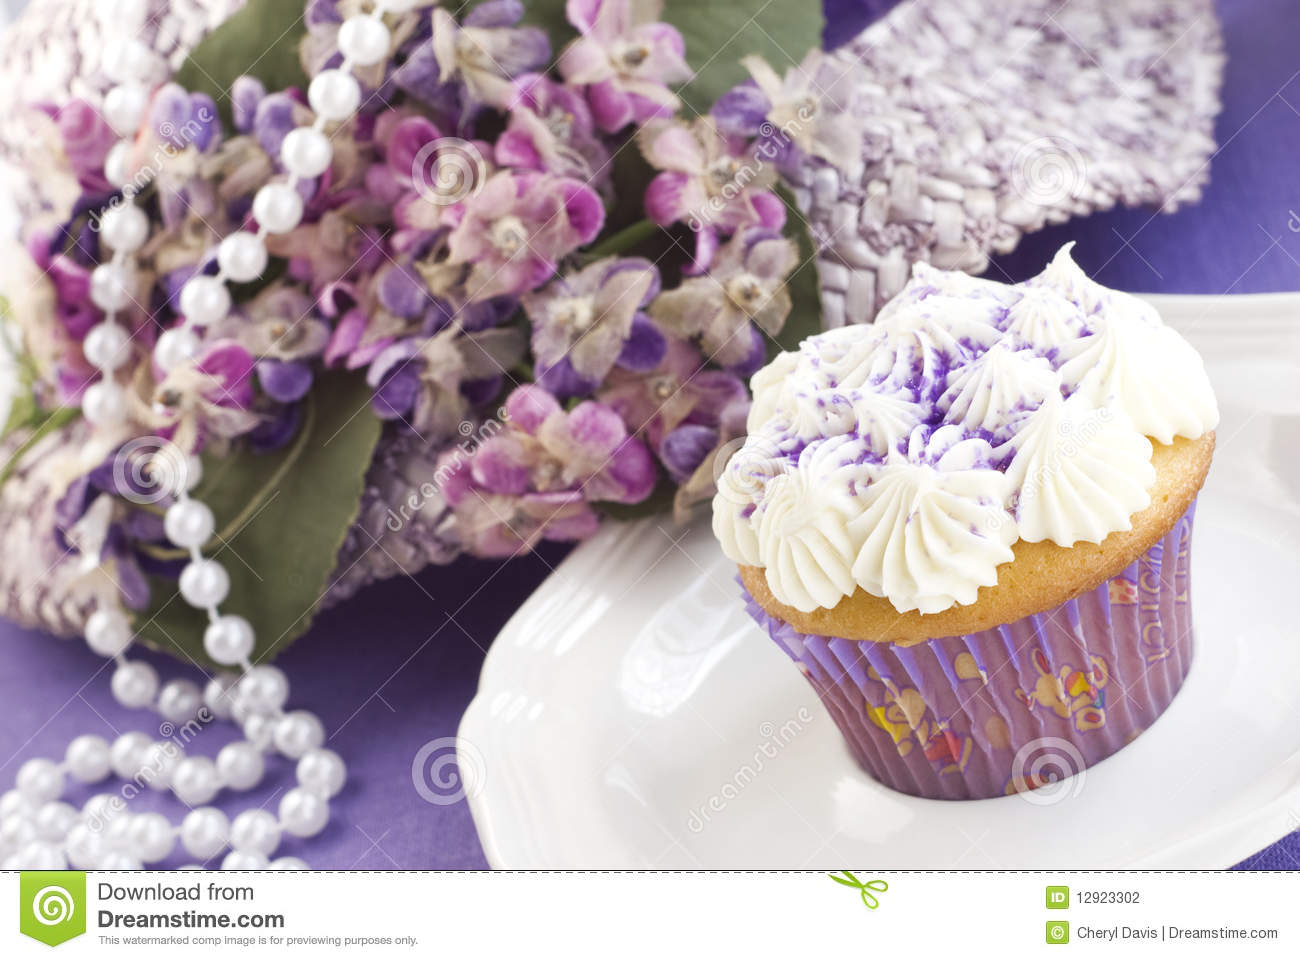 Pasen cupcake met purpere decoratie stock fotografie for Decoratie cupcakes